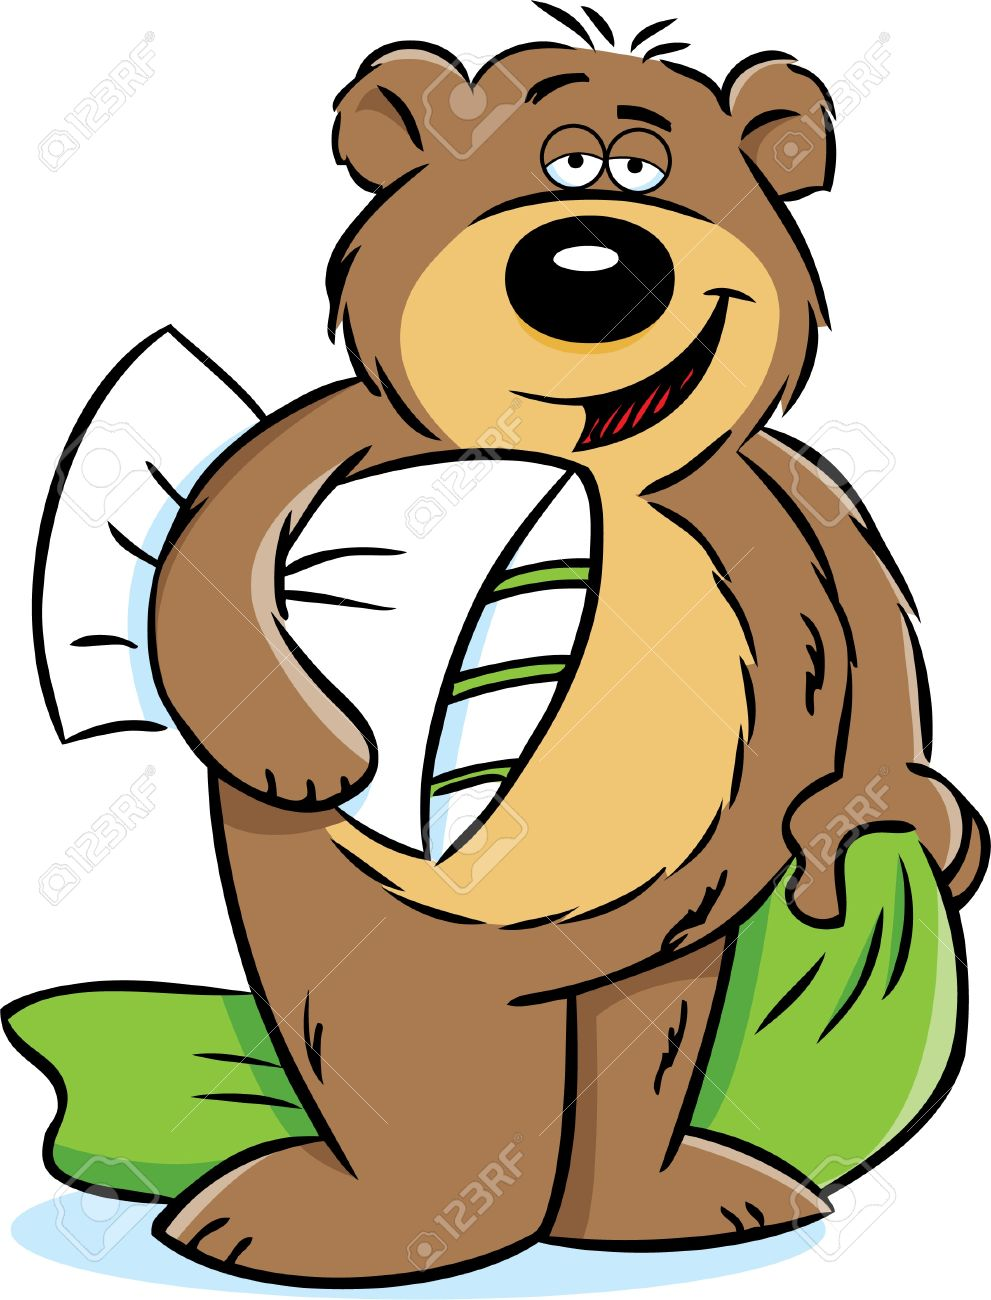 Bear Holding A Pillow And Blanket Royalty Free Cliparts, Vectors ... for Pillow And Blanket Clipart  300lyp